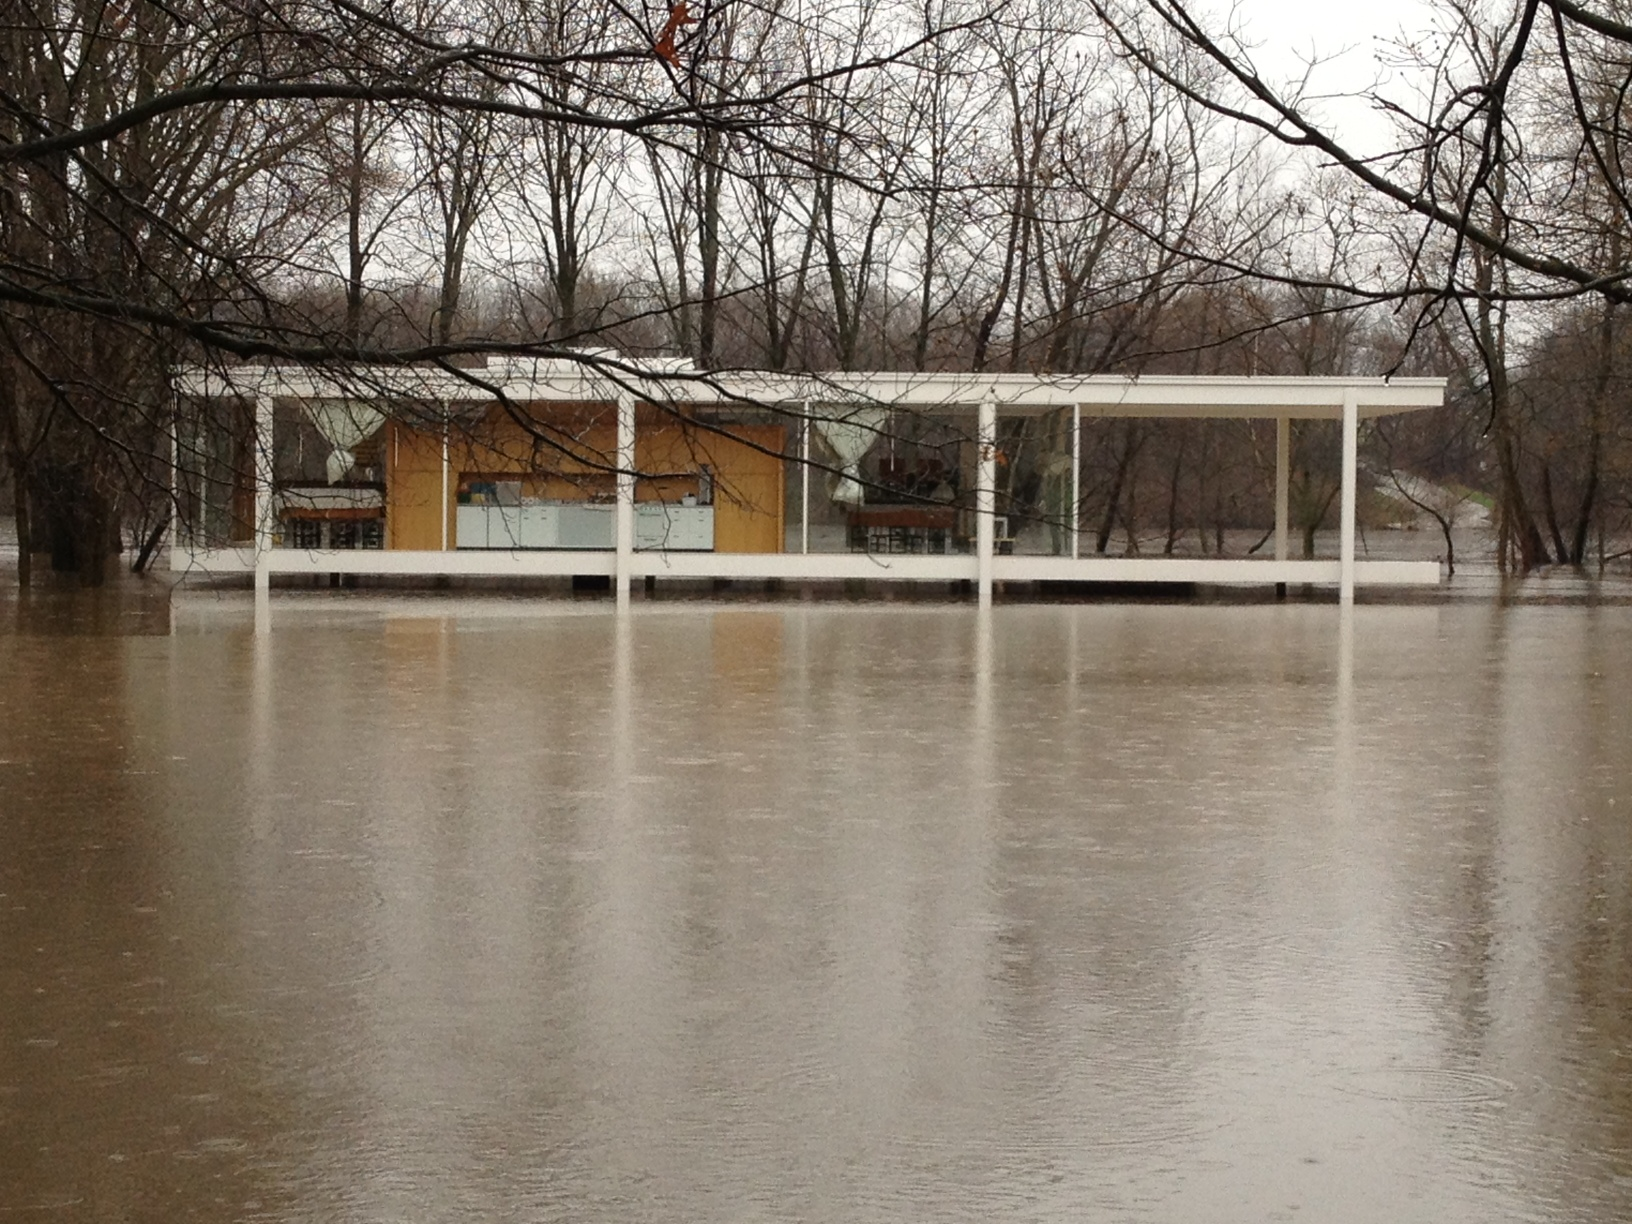 Farnsworth House flooding on 4/18/13.Photo © National Trust for Historic Preservation